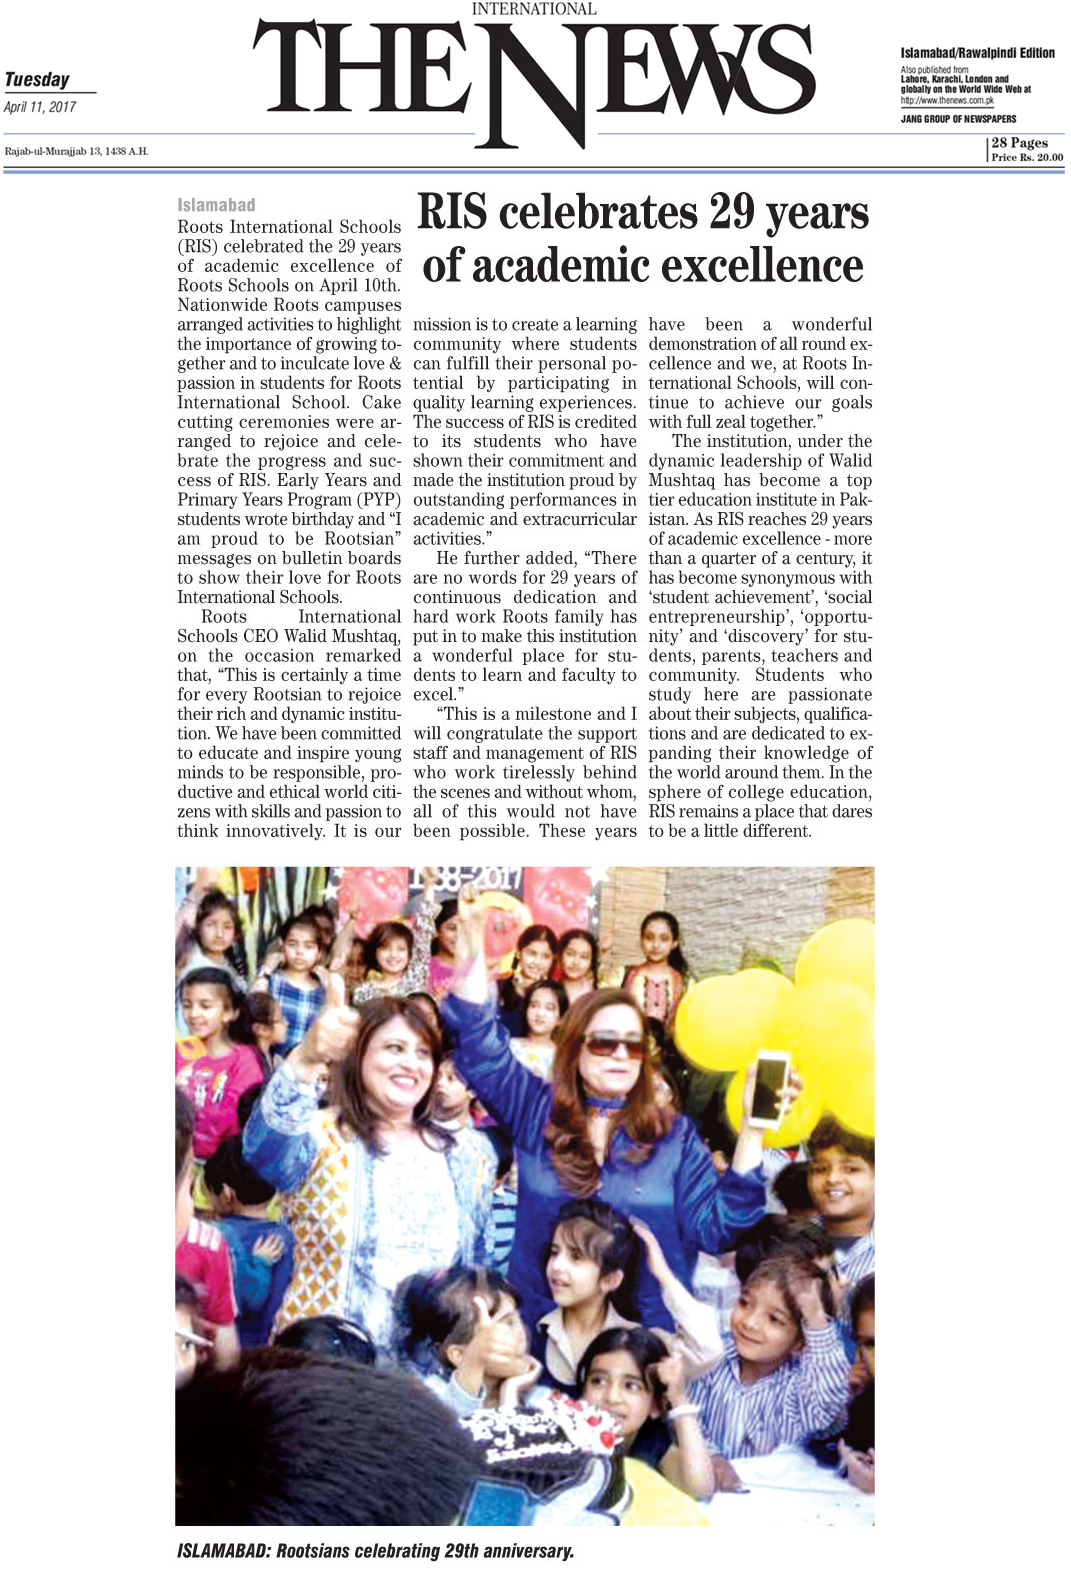 RIS celebrates 29 years of academic excellence